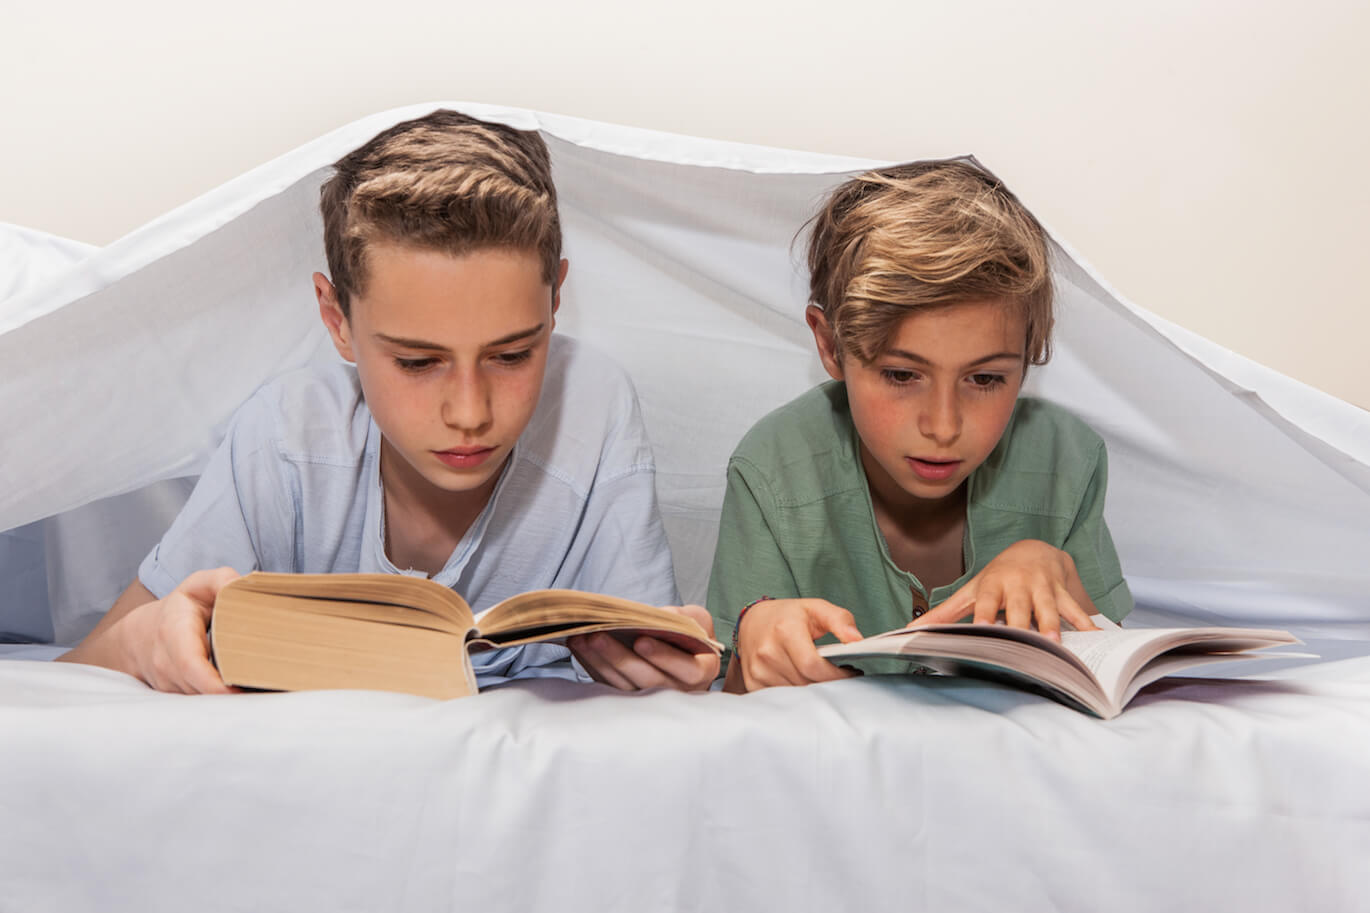 two boys reading books under a white bed sheet